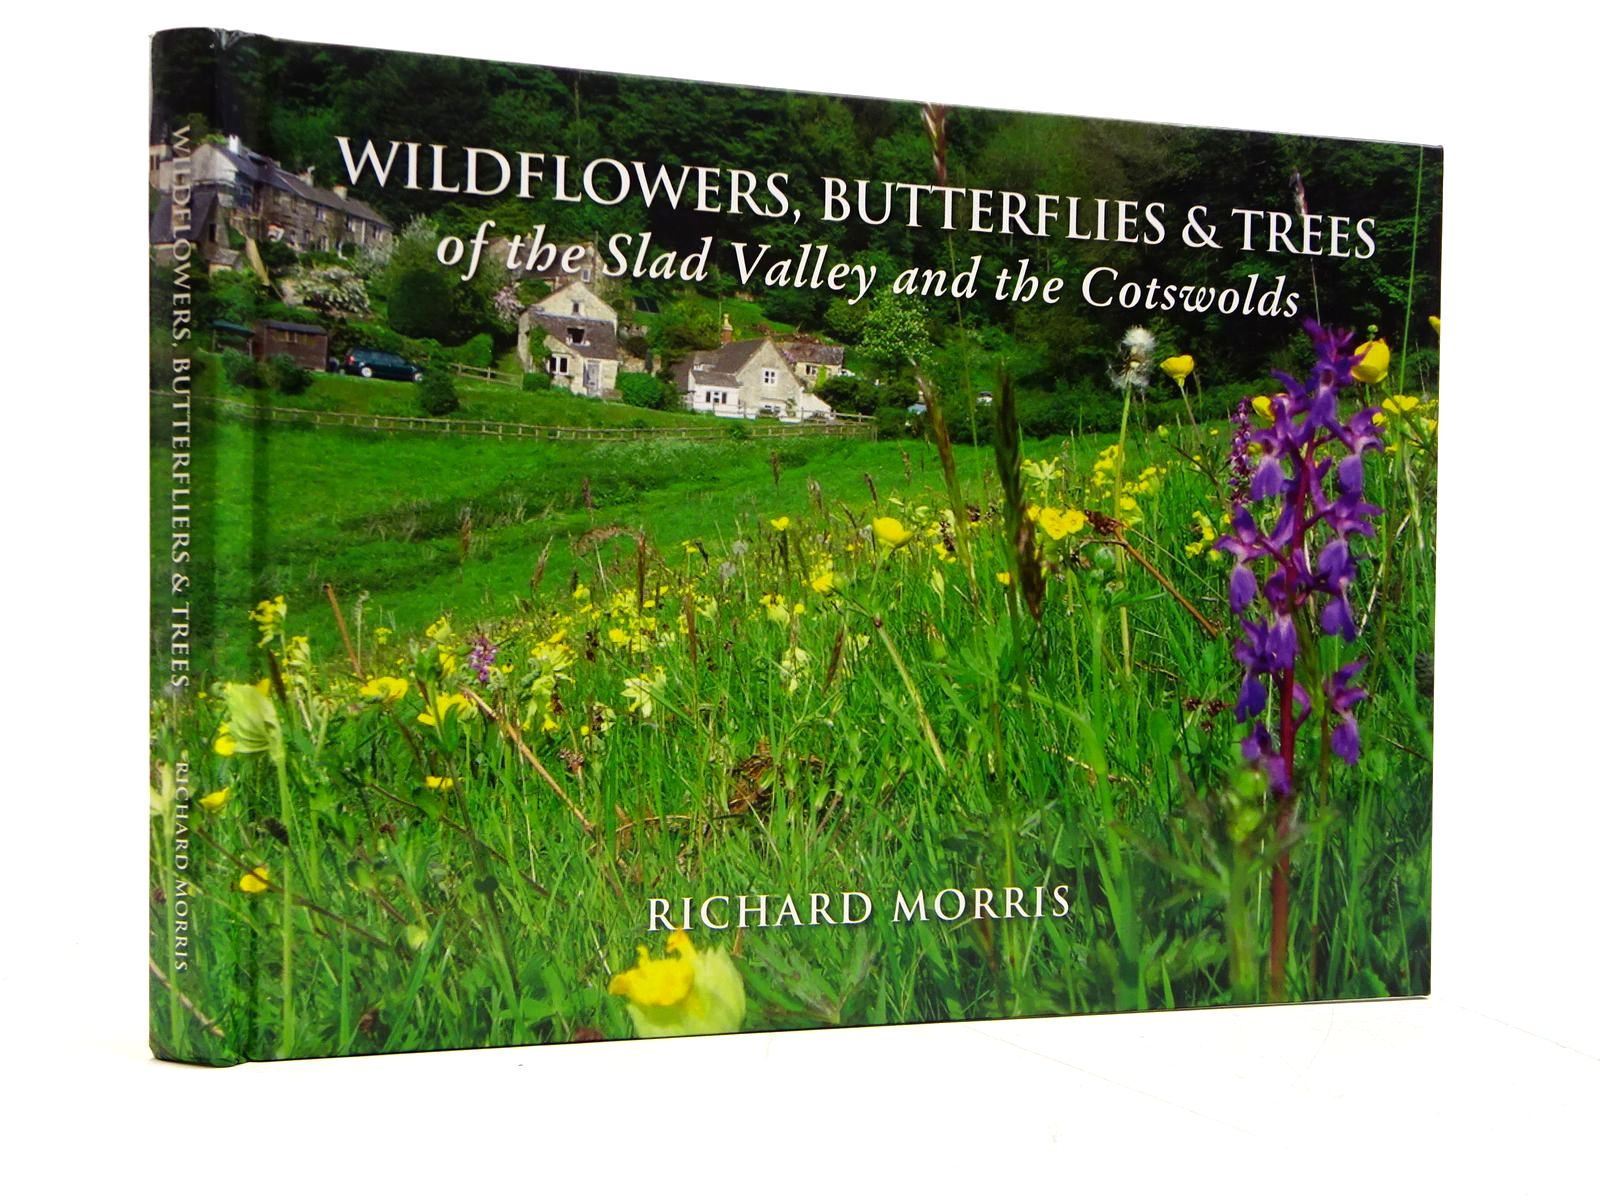 Photo of WILDFLOWERS, BUTTERFLIES & TREES OF THE SLAD VALLEY AND THE COTSWOLDS